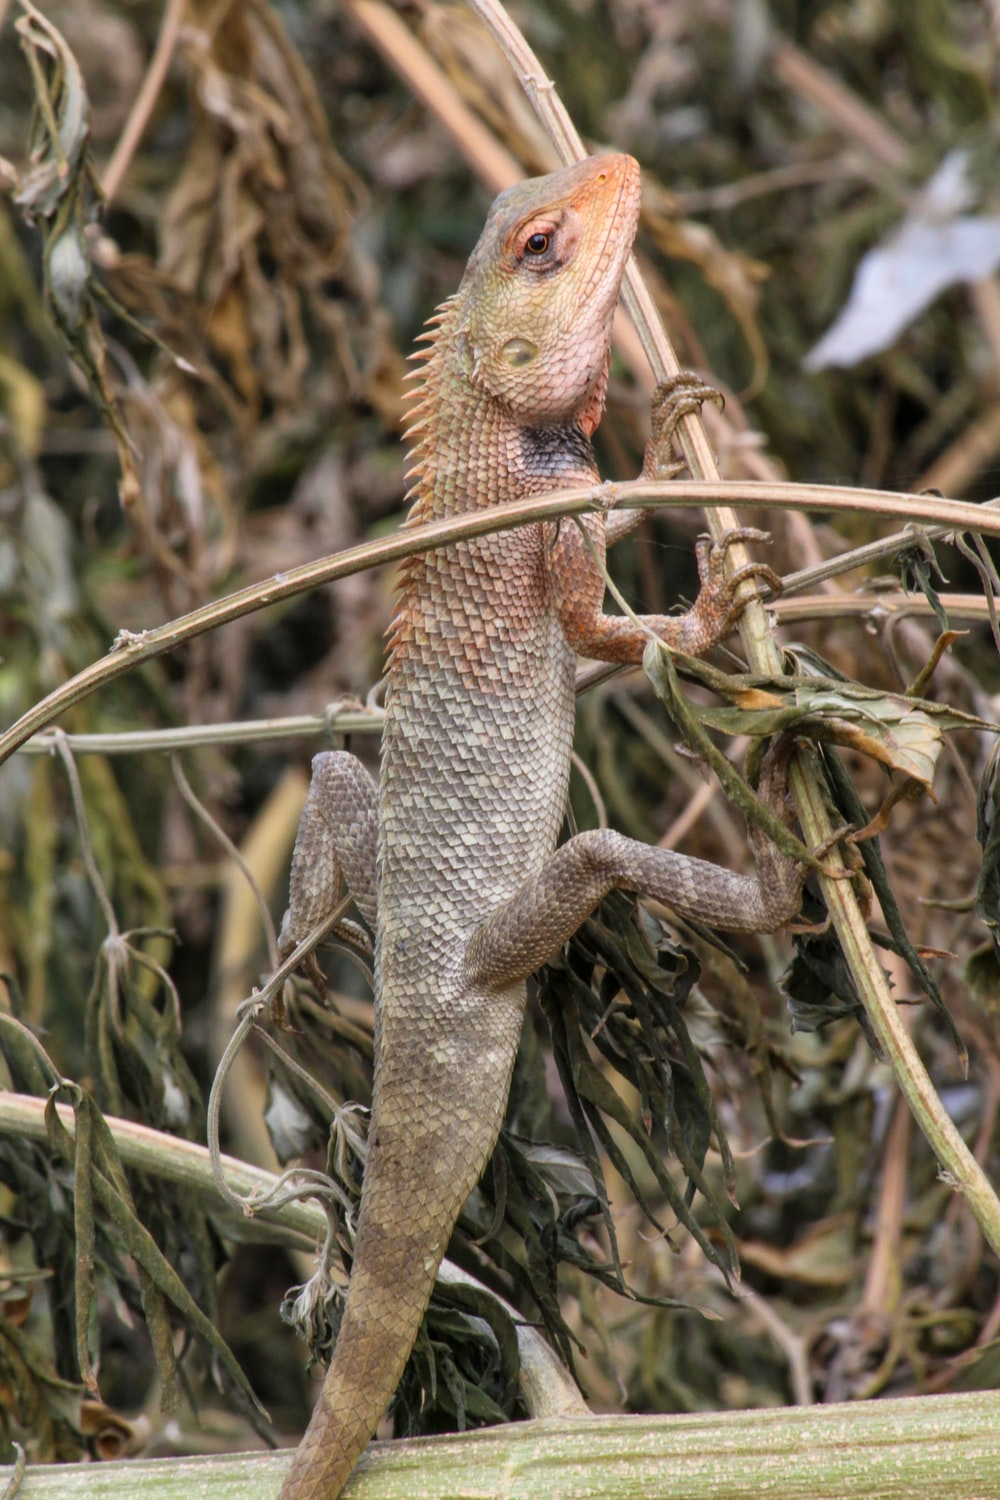 brown and black bearded dragon on brown tree branch during daytime